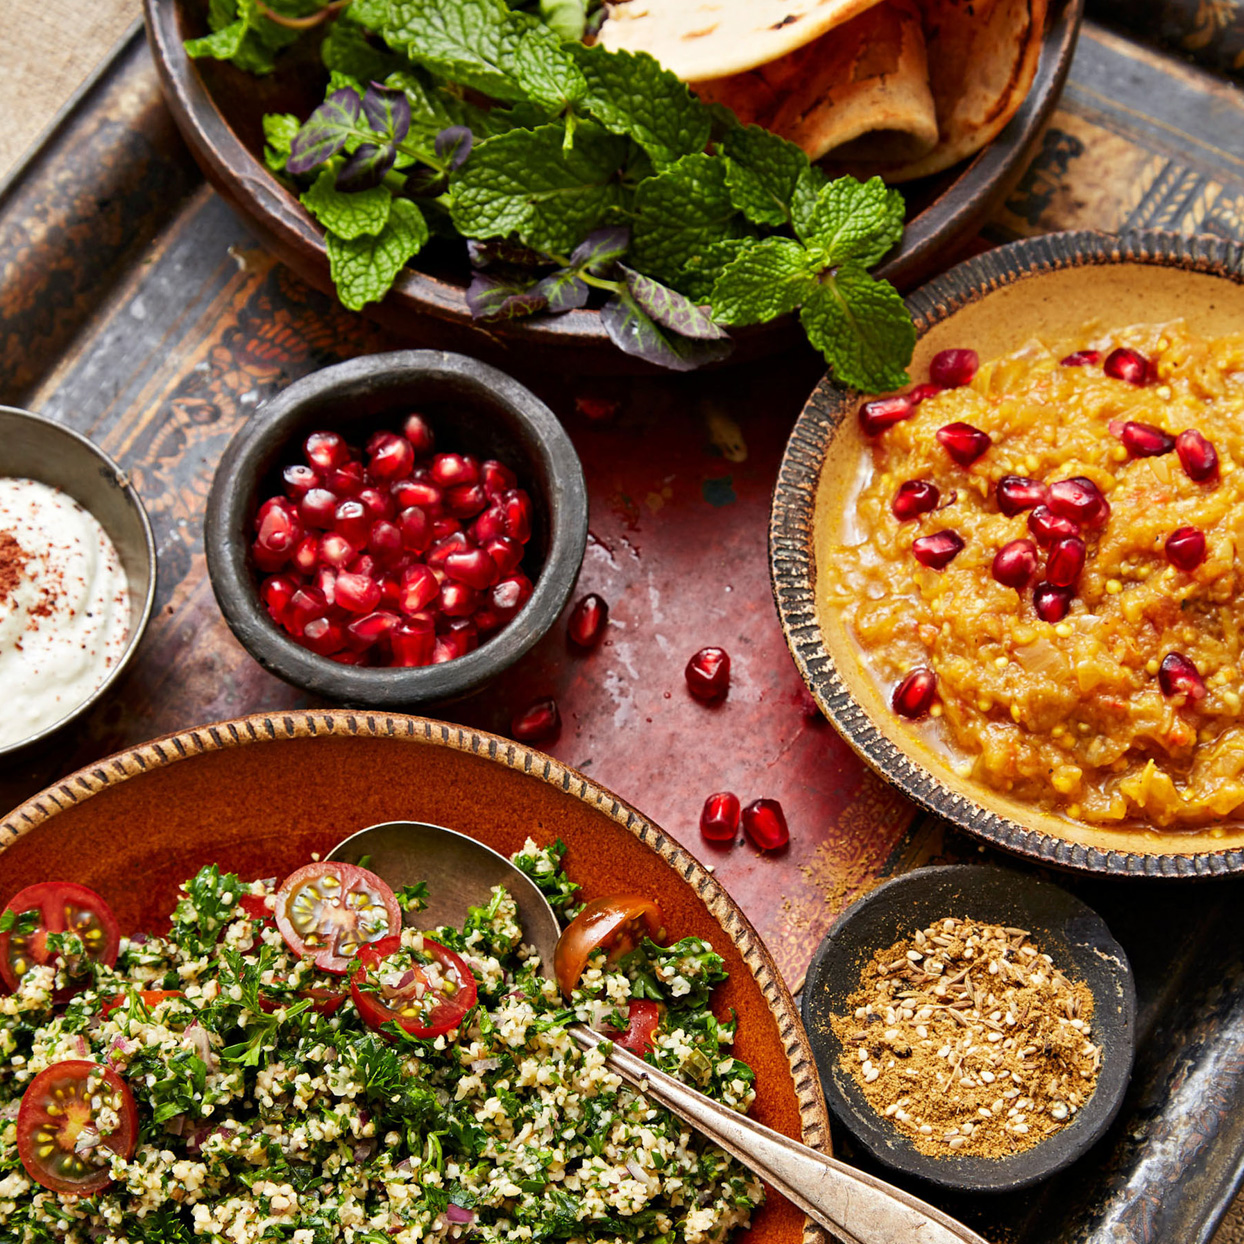 tabbouleh salad and other foods on table